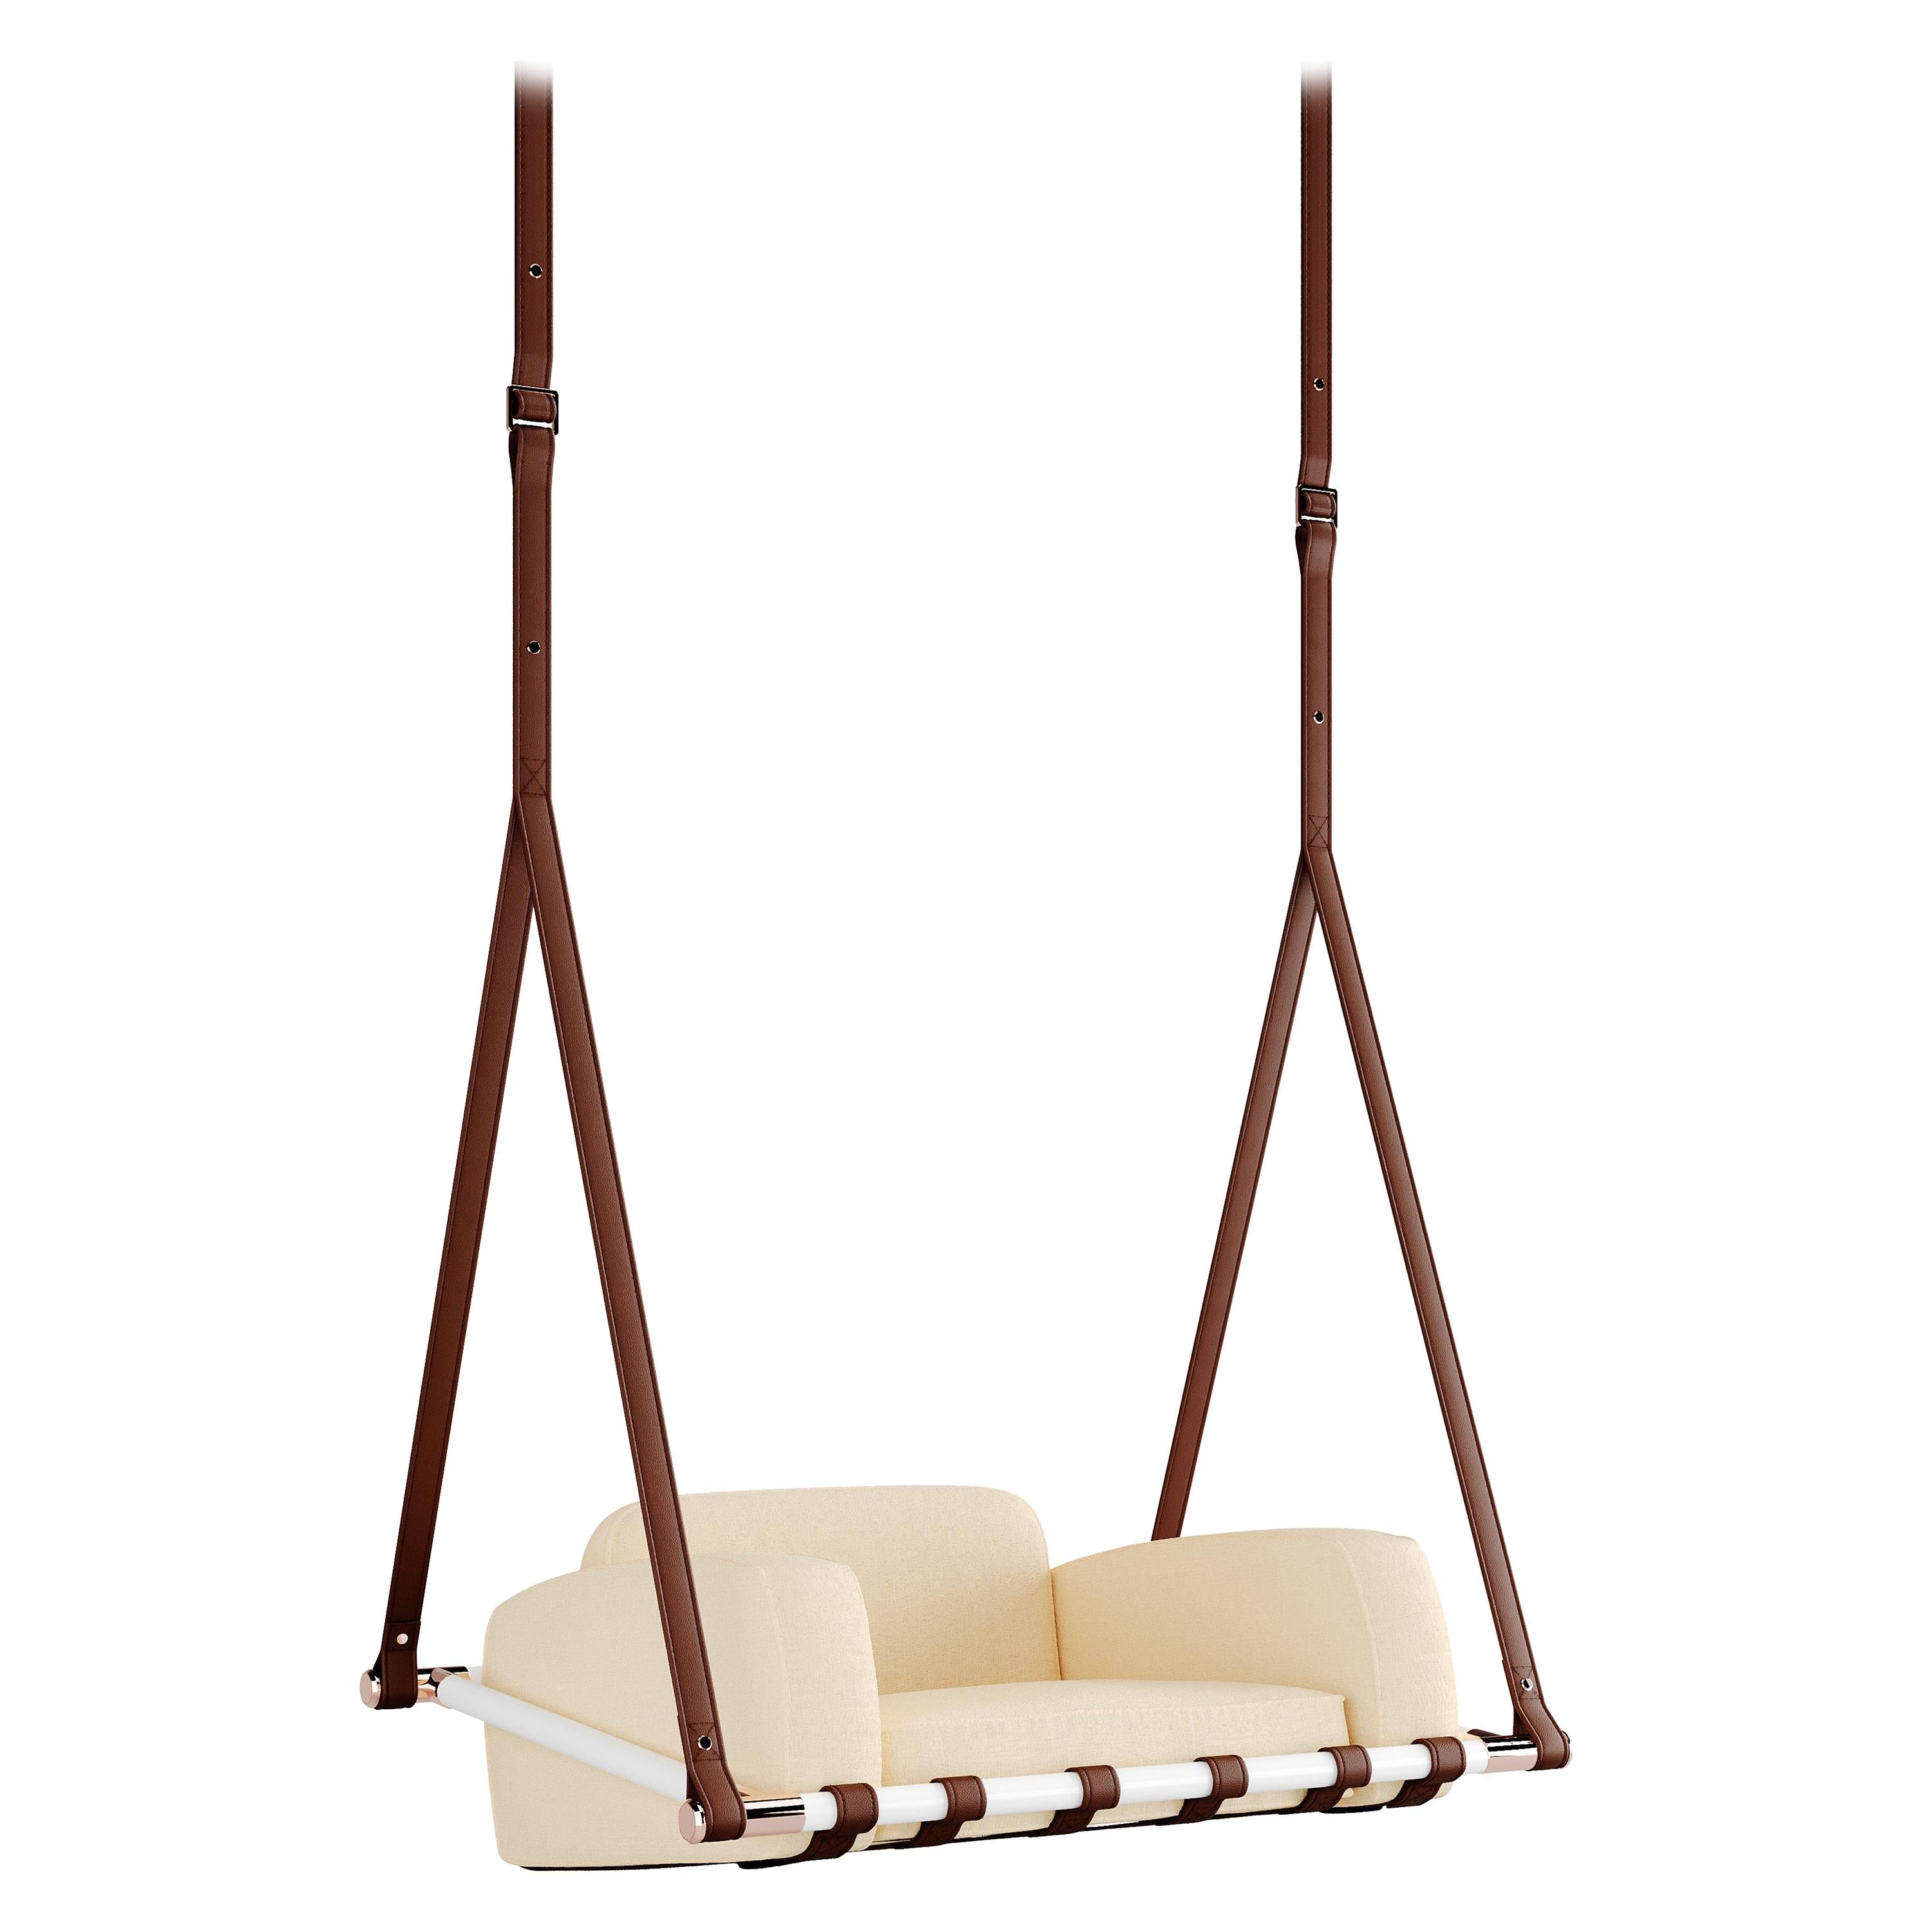 Contemporary Outdoor Hanging Chair Stainless Steel Waterproof Fabric Beige